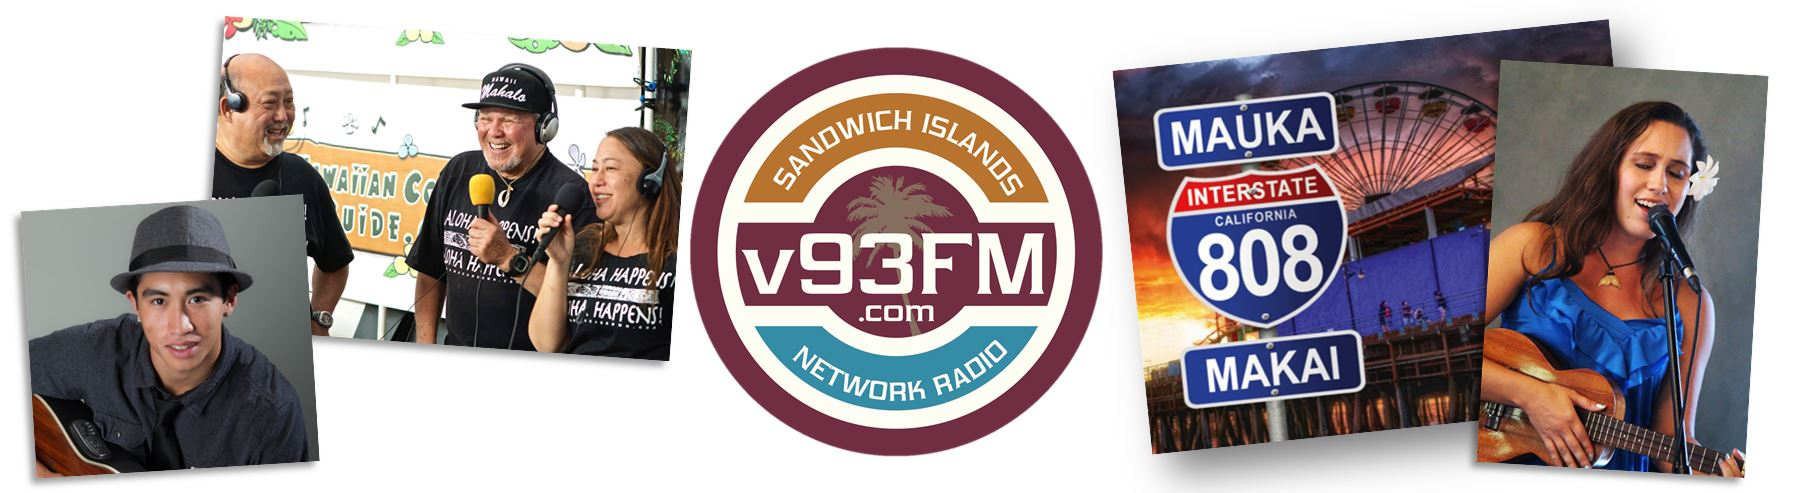 California 808 by Sandwich Islands Network Radio